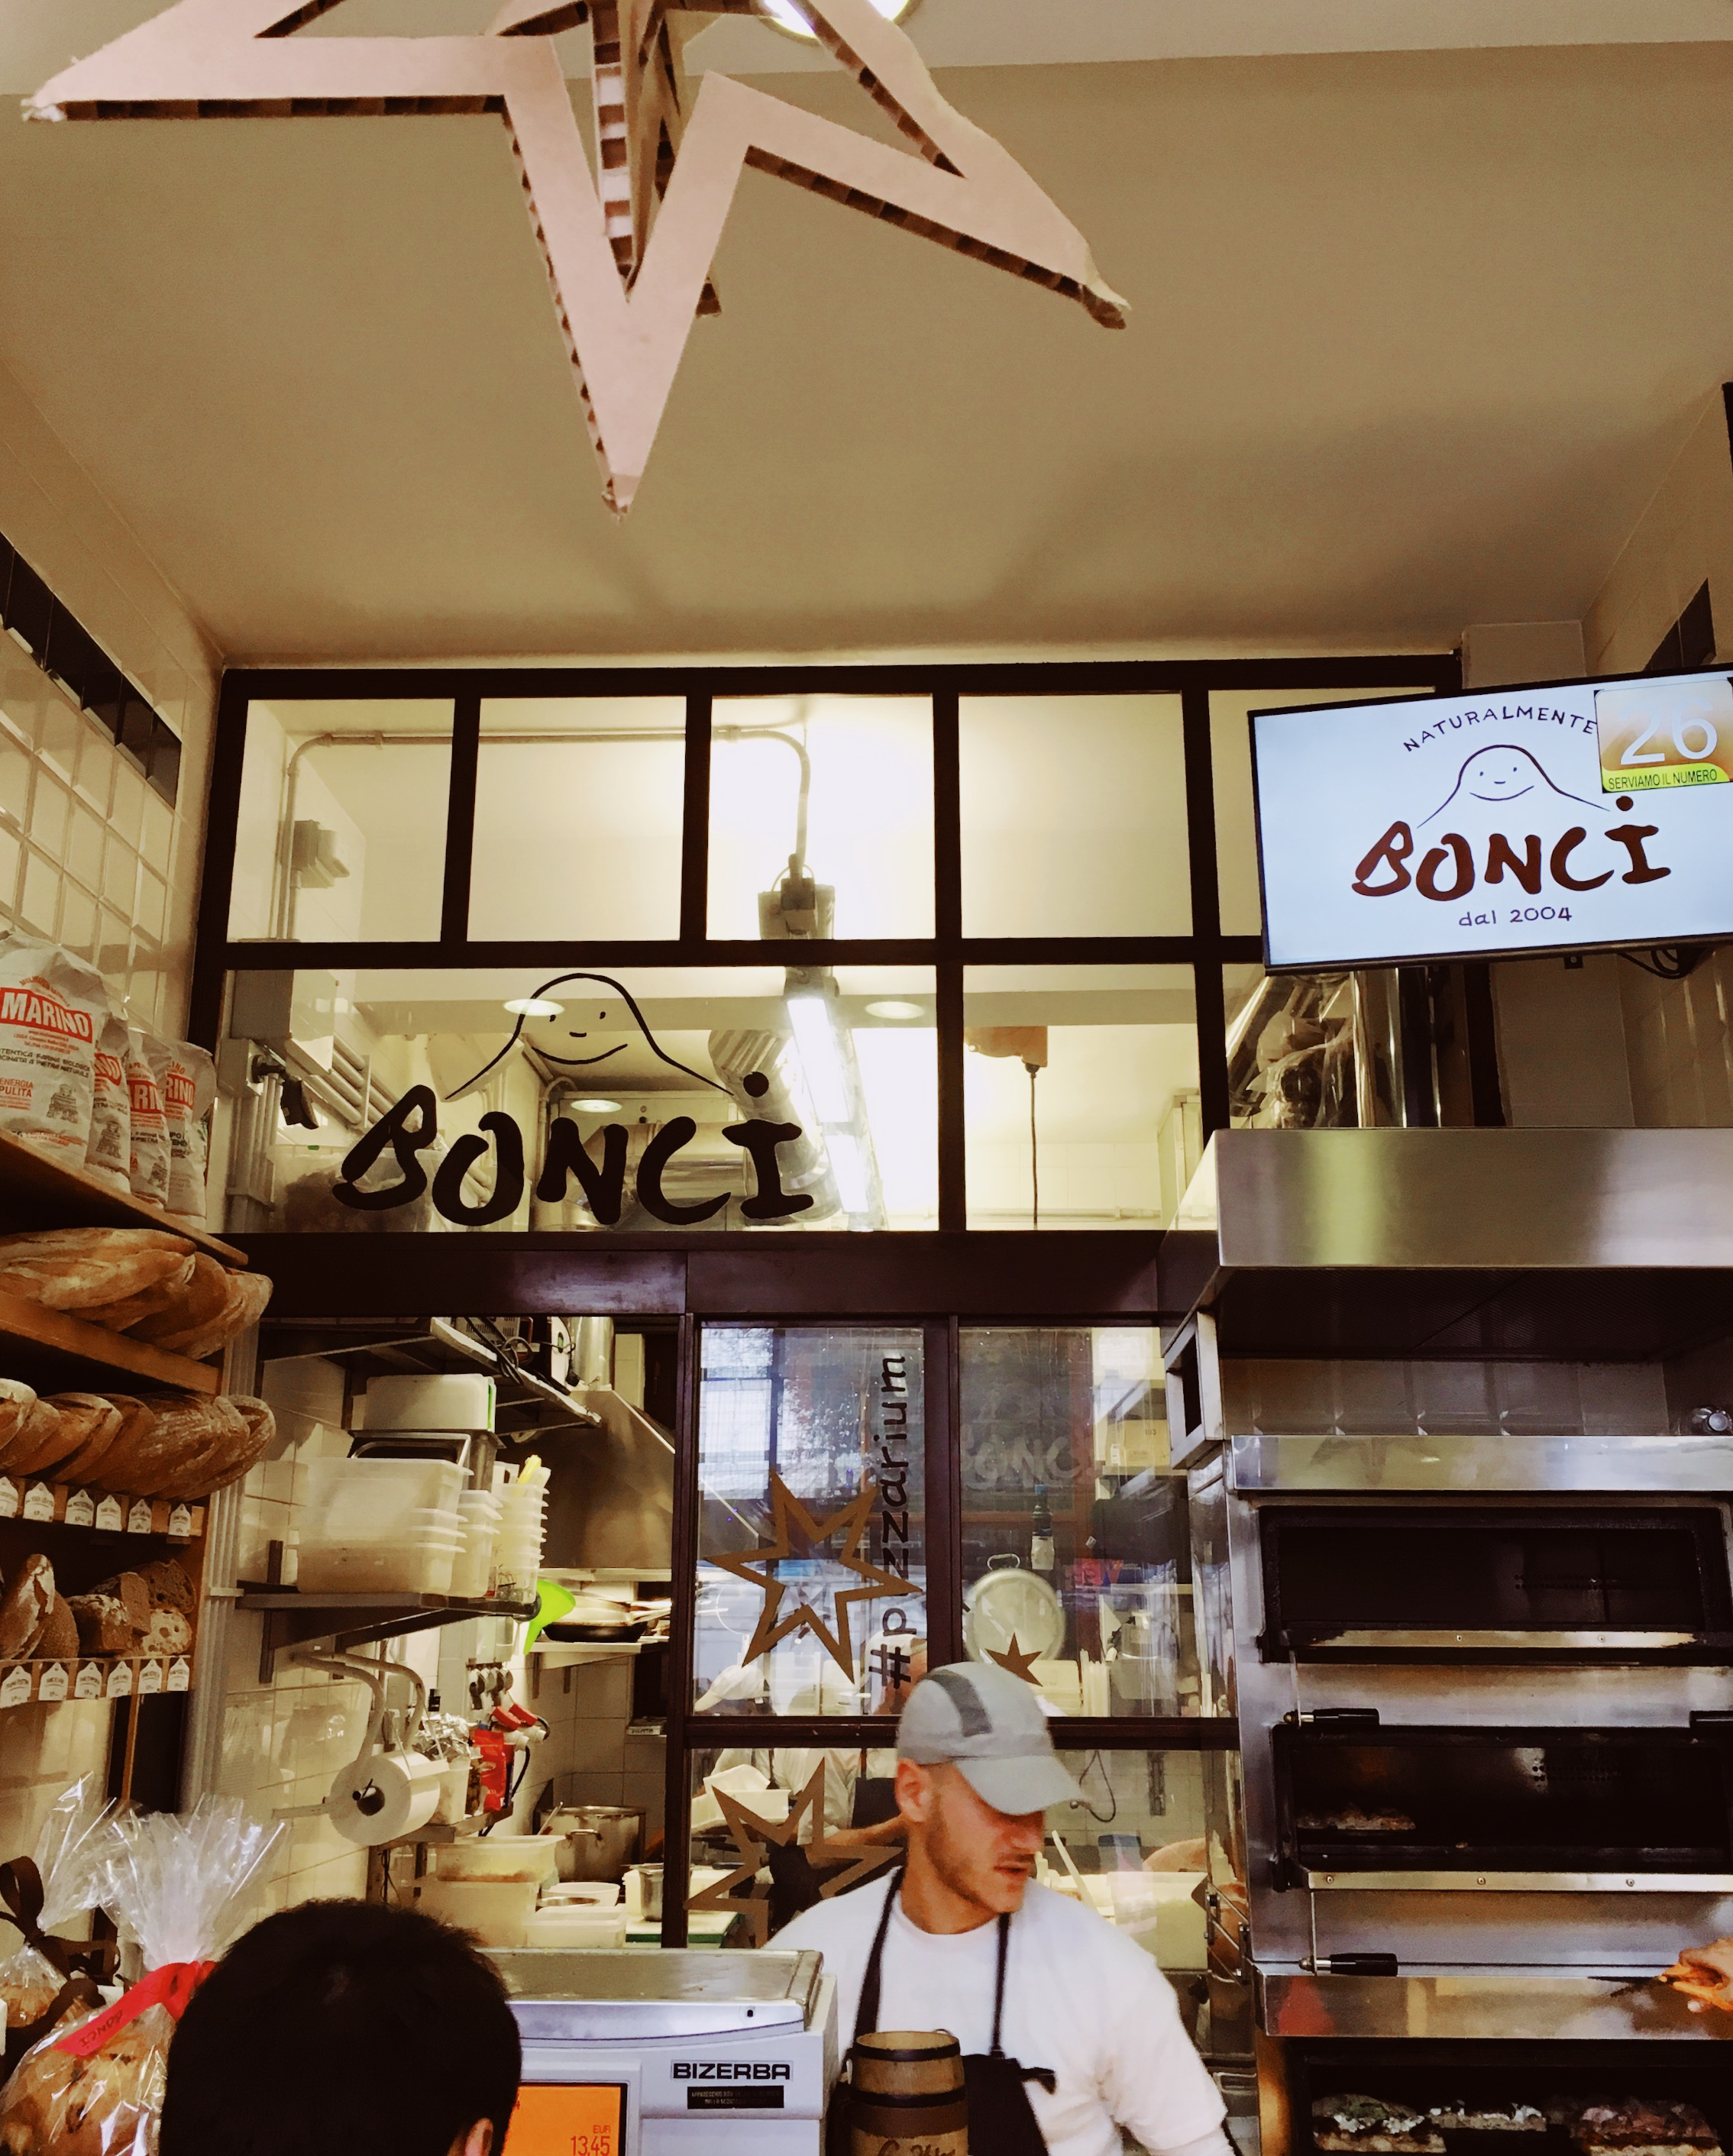 Pay for your pizza at the Bonci Counter